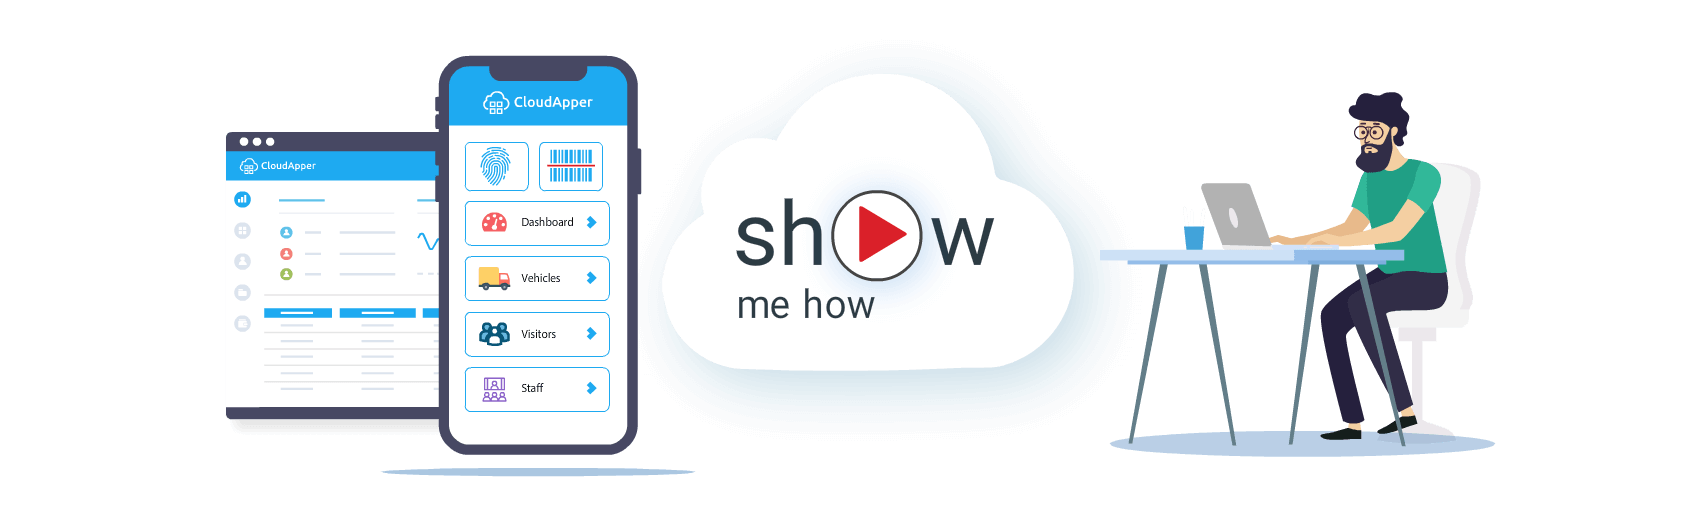 promo-video-show_me_how_cloudapper